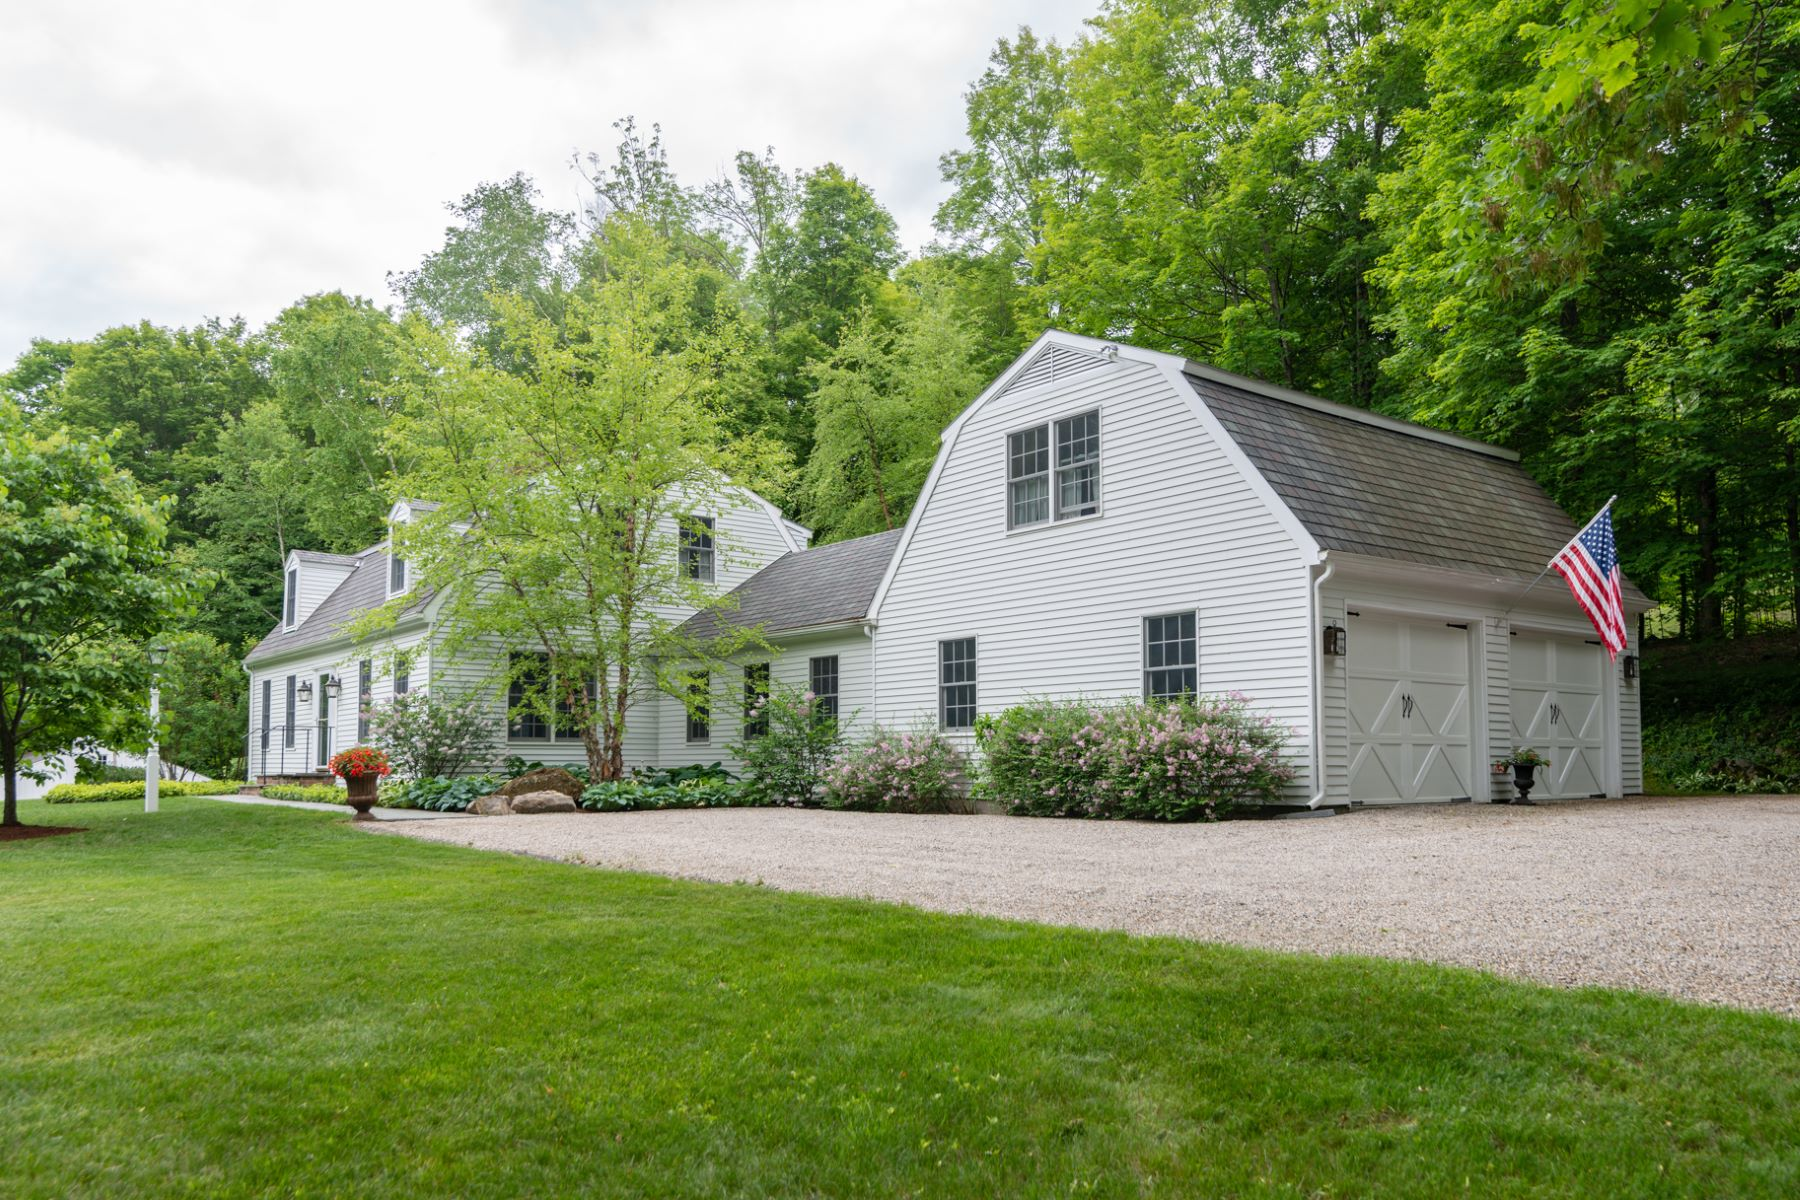 single family homes for Sale at 591 Nichols Hill Road, Dorset 591 Nichols Hill Rd Dorset, Vermont 05251 United States